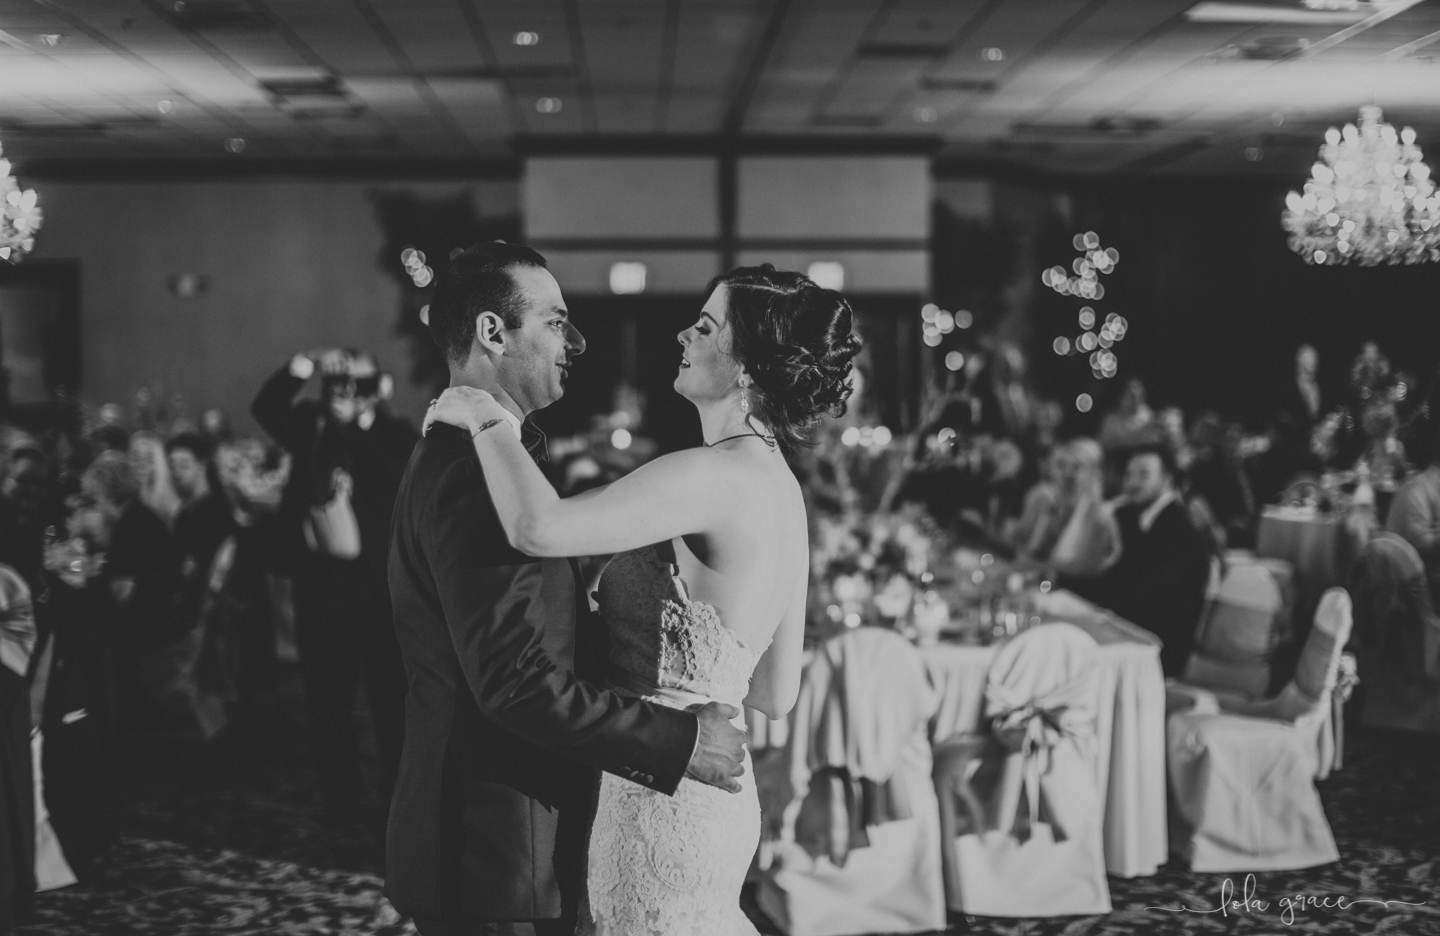 lola-grace-photography-erin-nik-brighton-mi-wedding-39.jpg